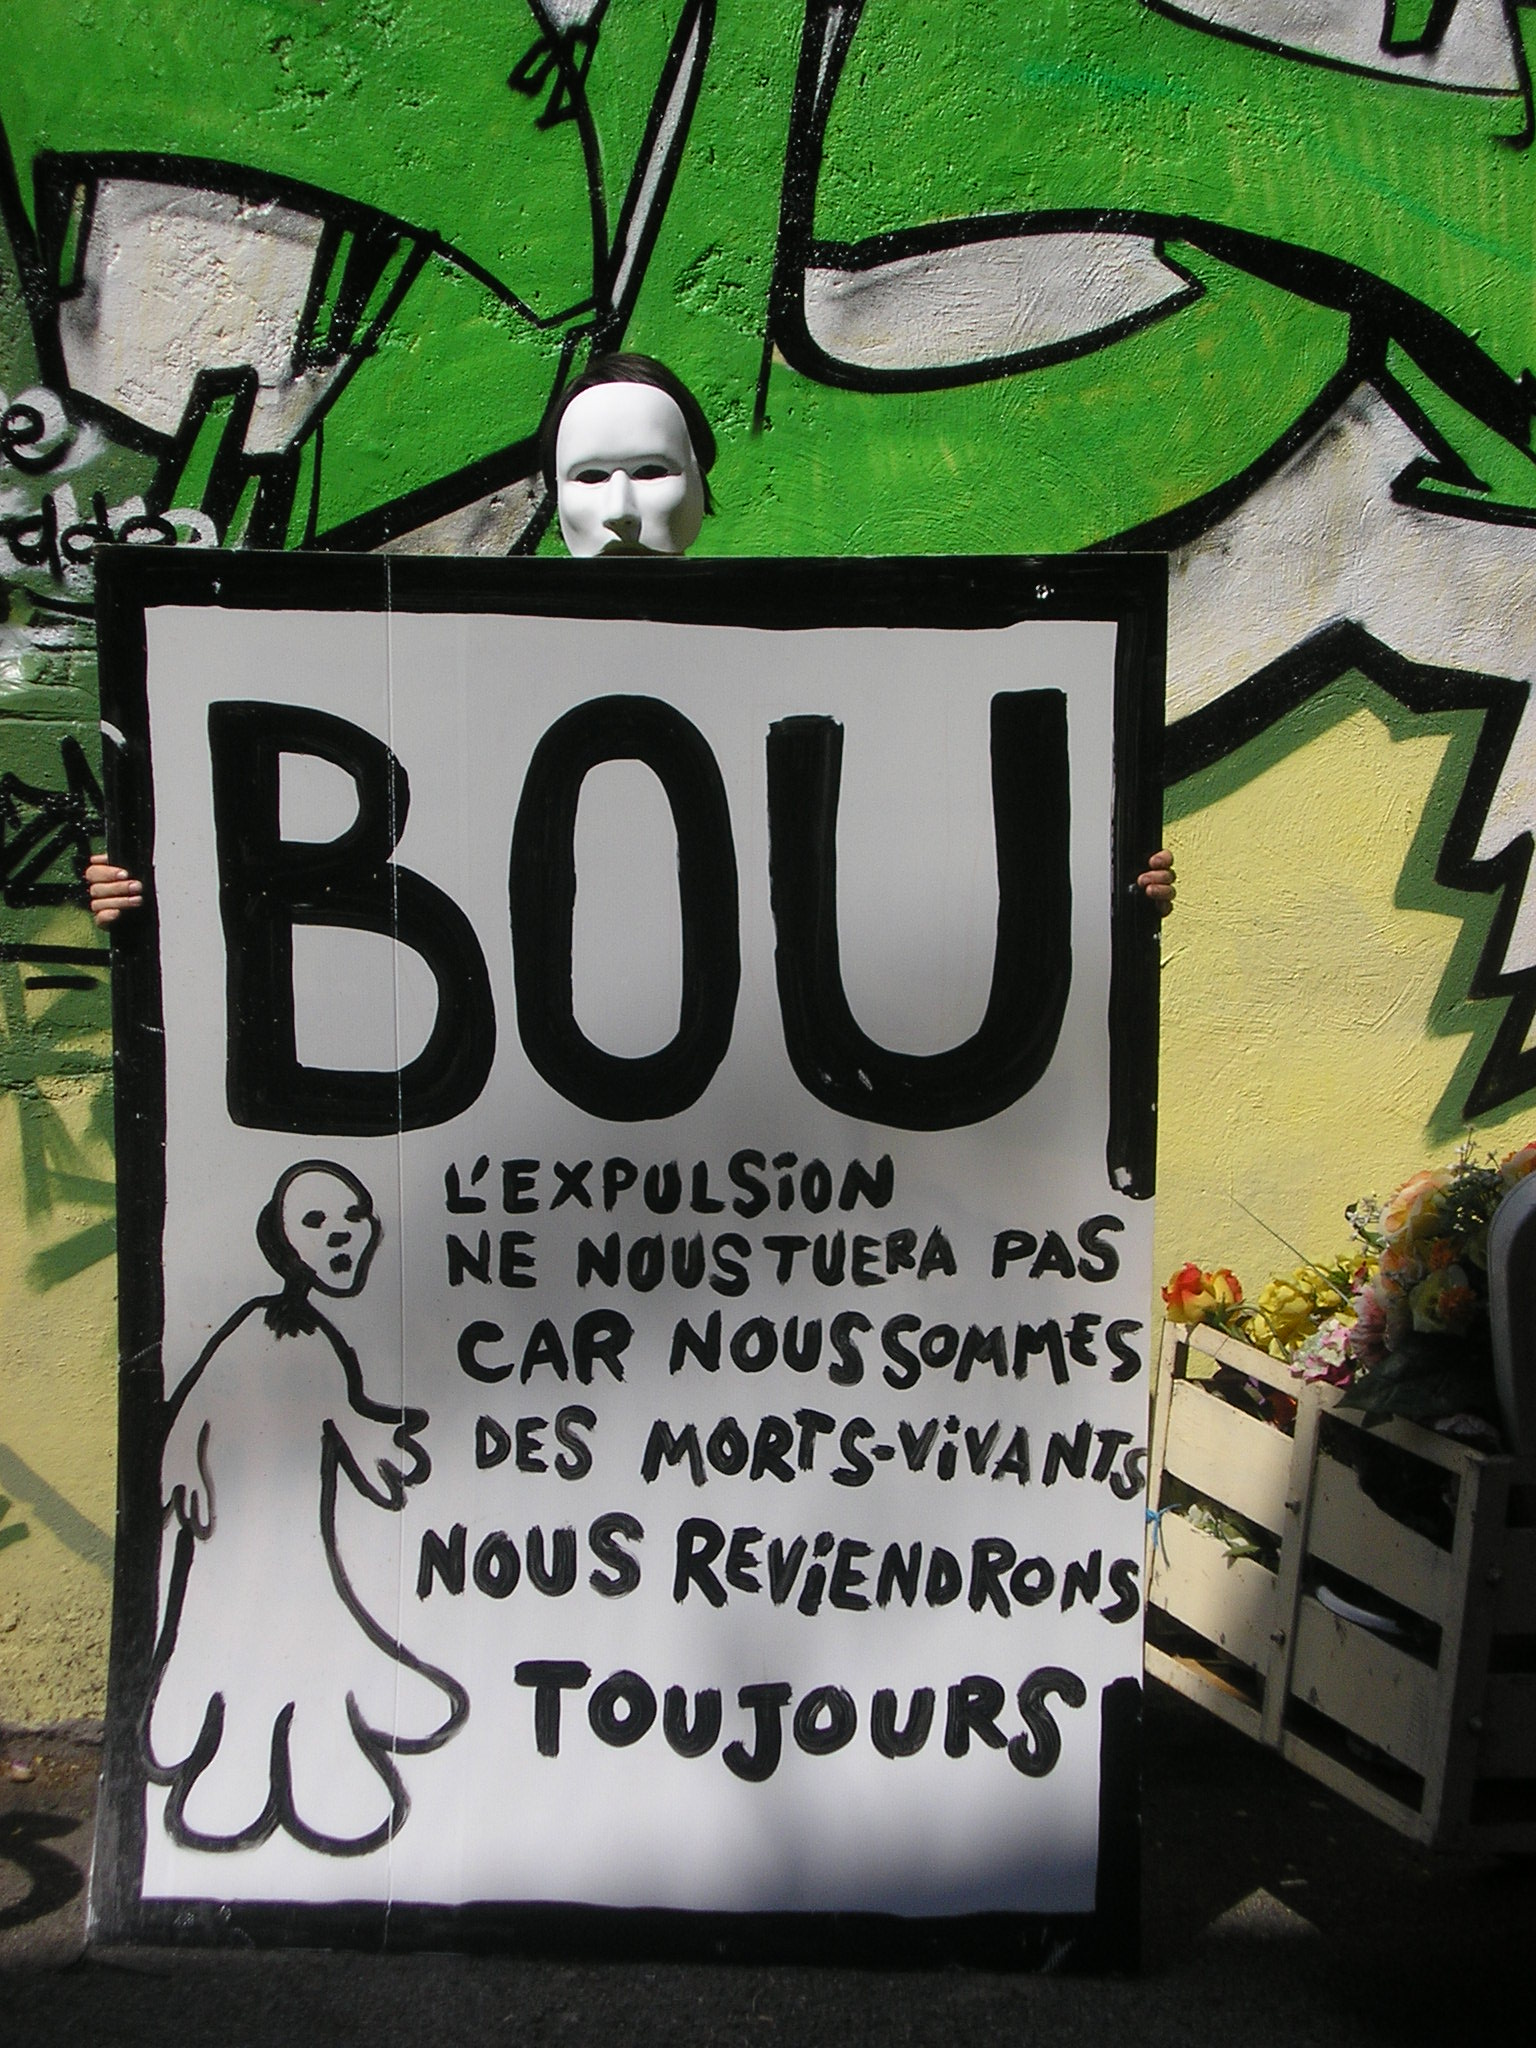 http://grenoble.squat.net/400couverts/2005-06_bou.jpg